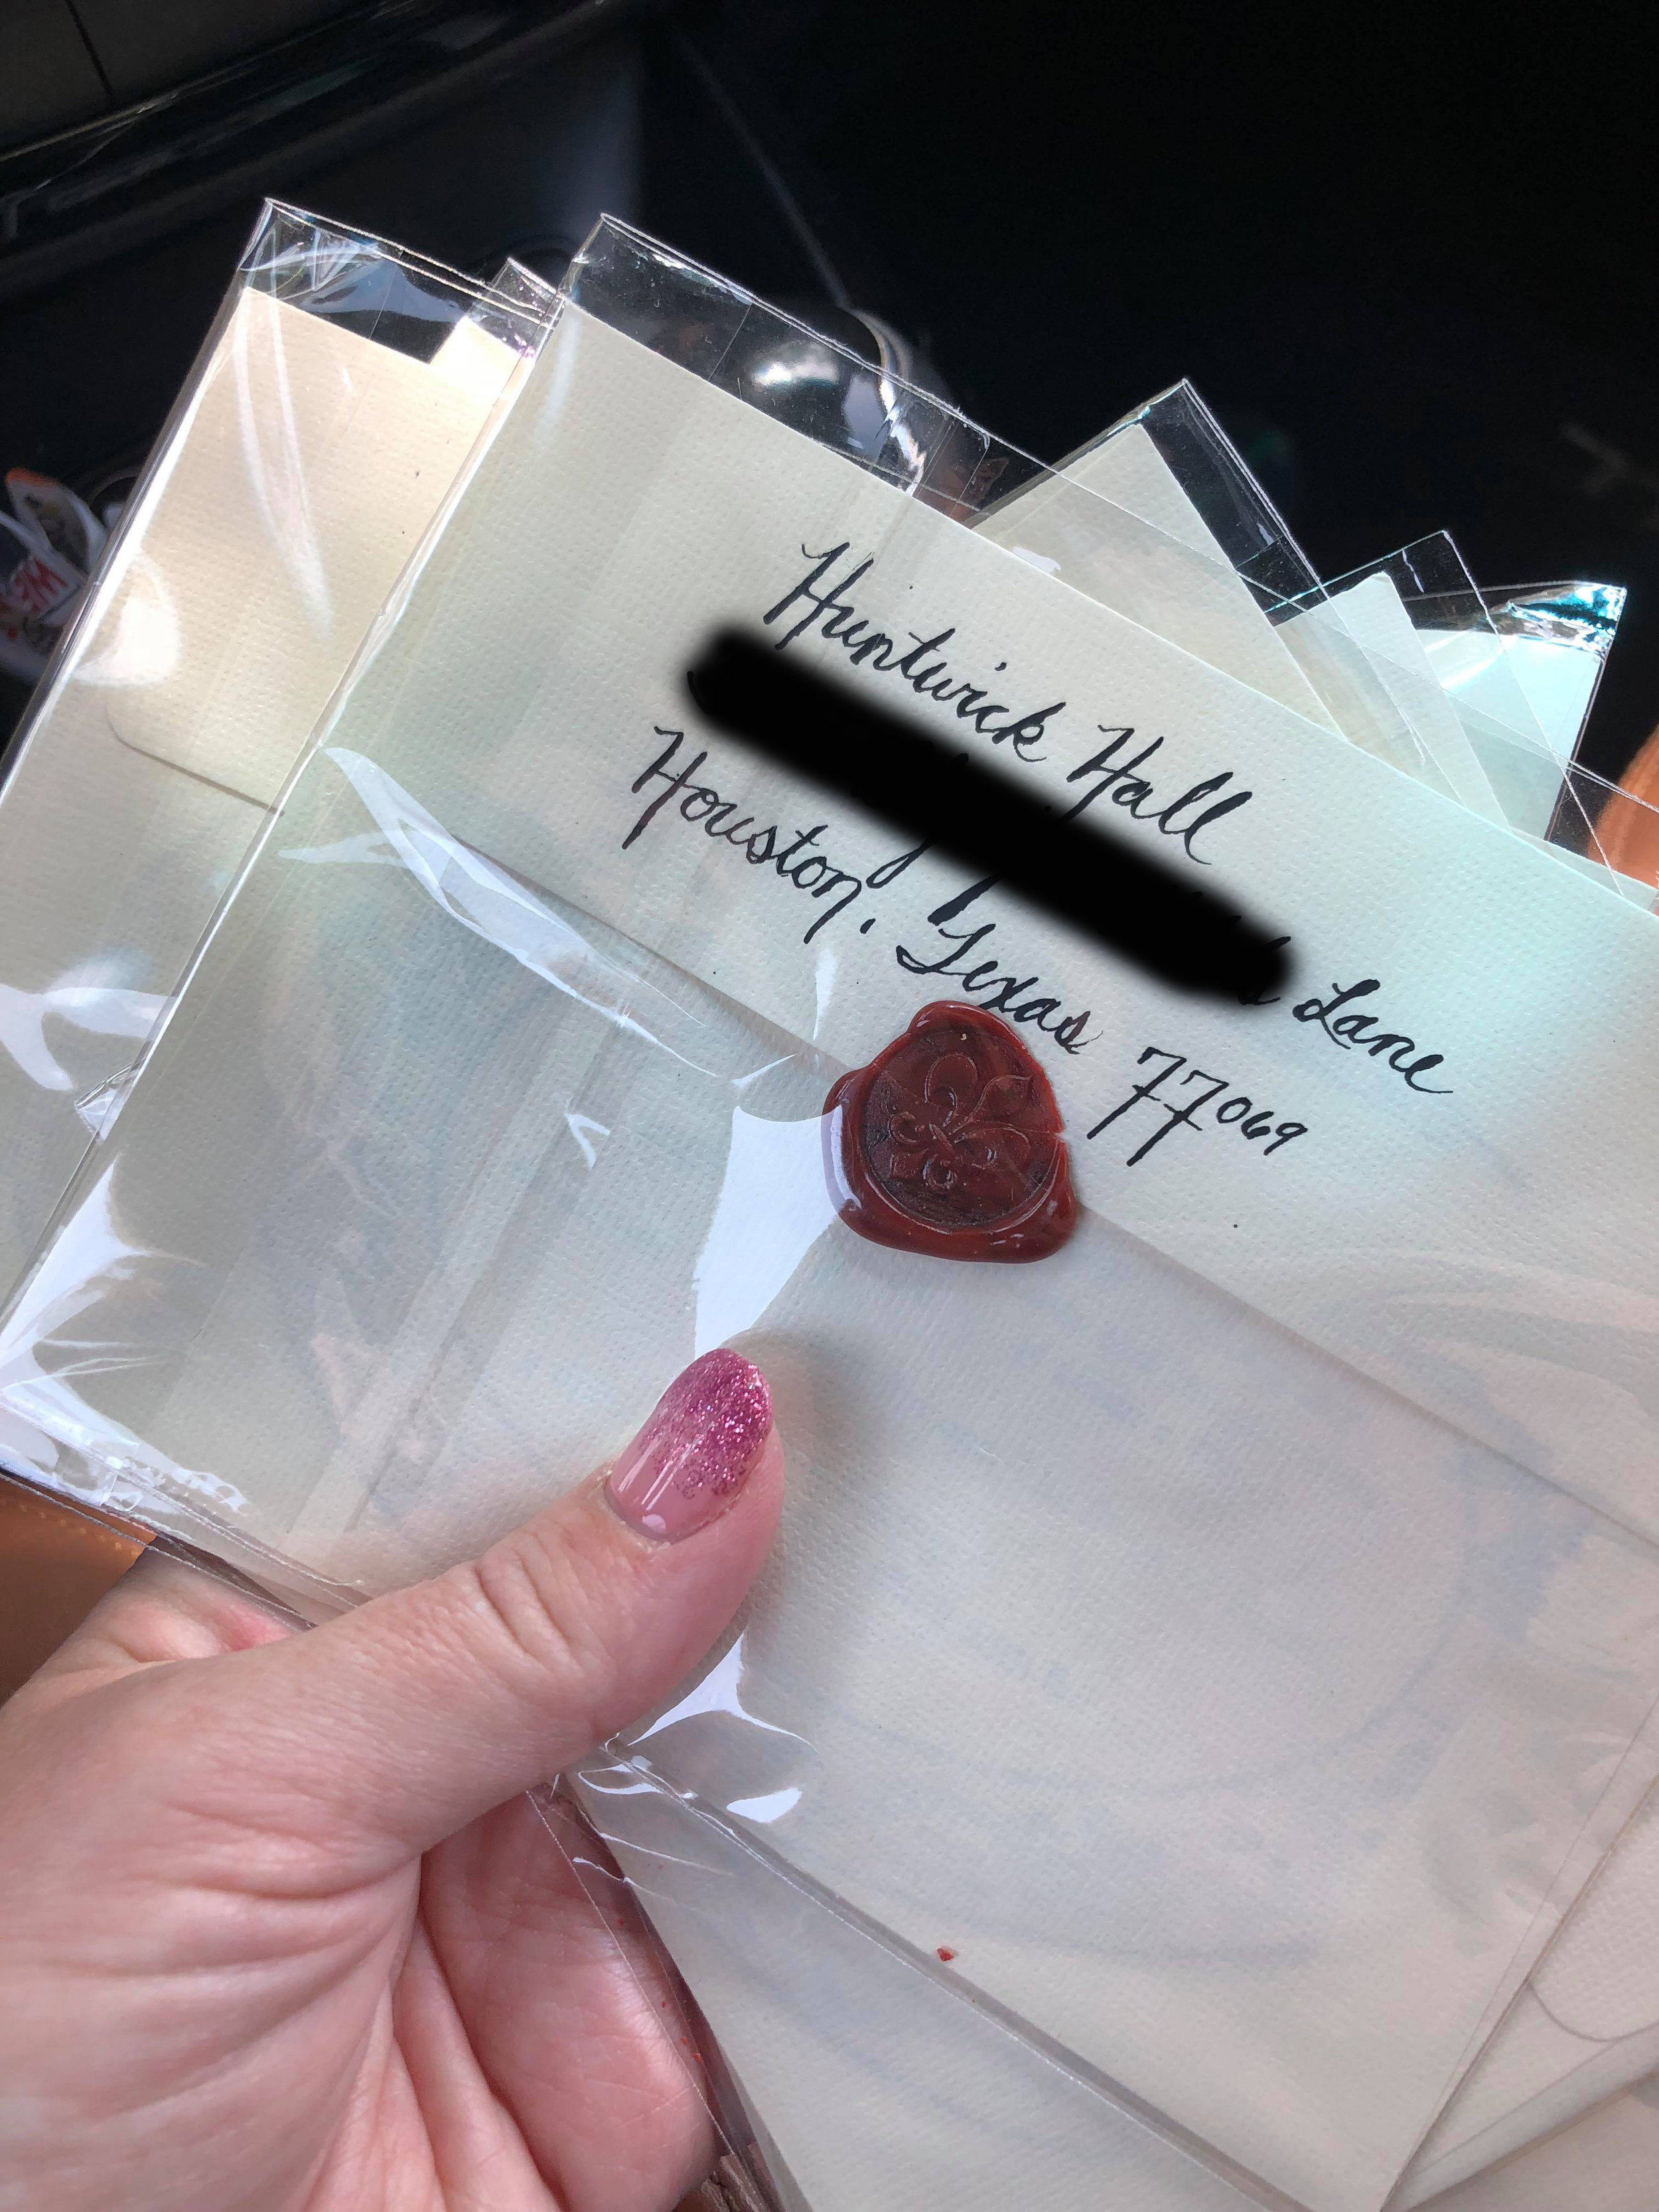 If you really want to up your Invitation Game… - Ink and paper, handwritten, PLUS wax sealed…because you fancy